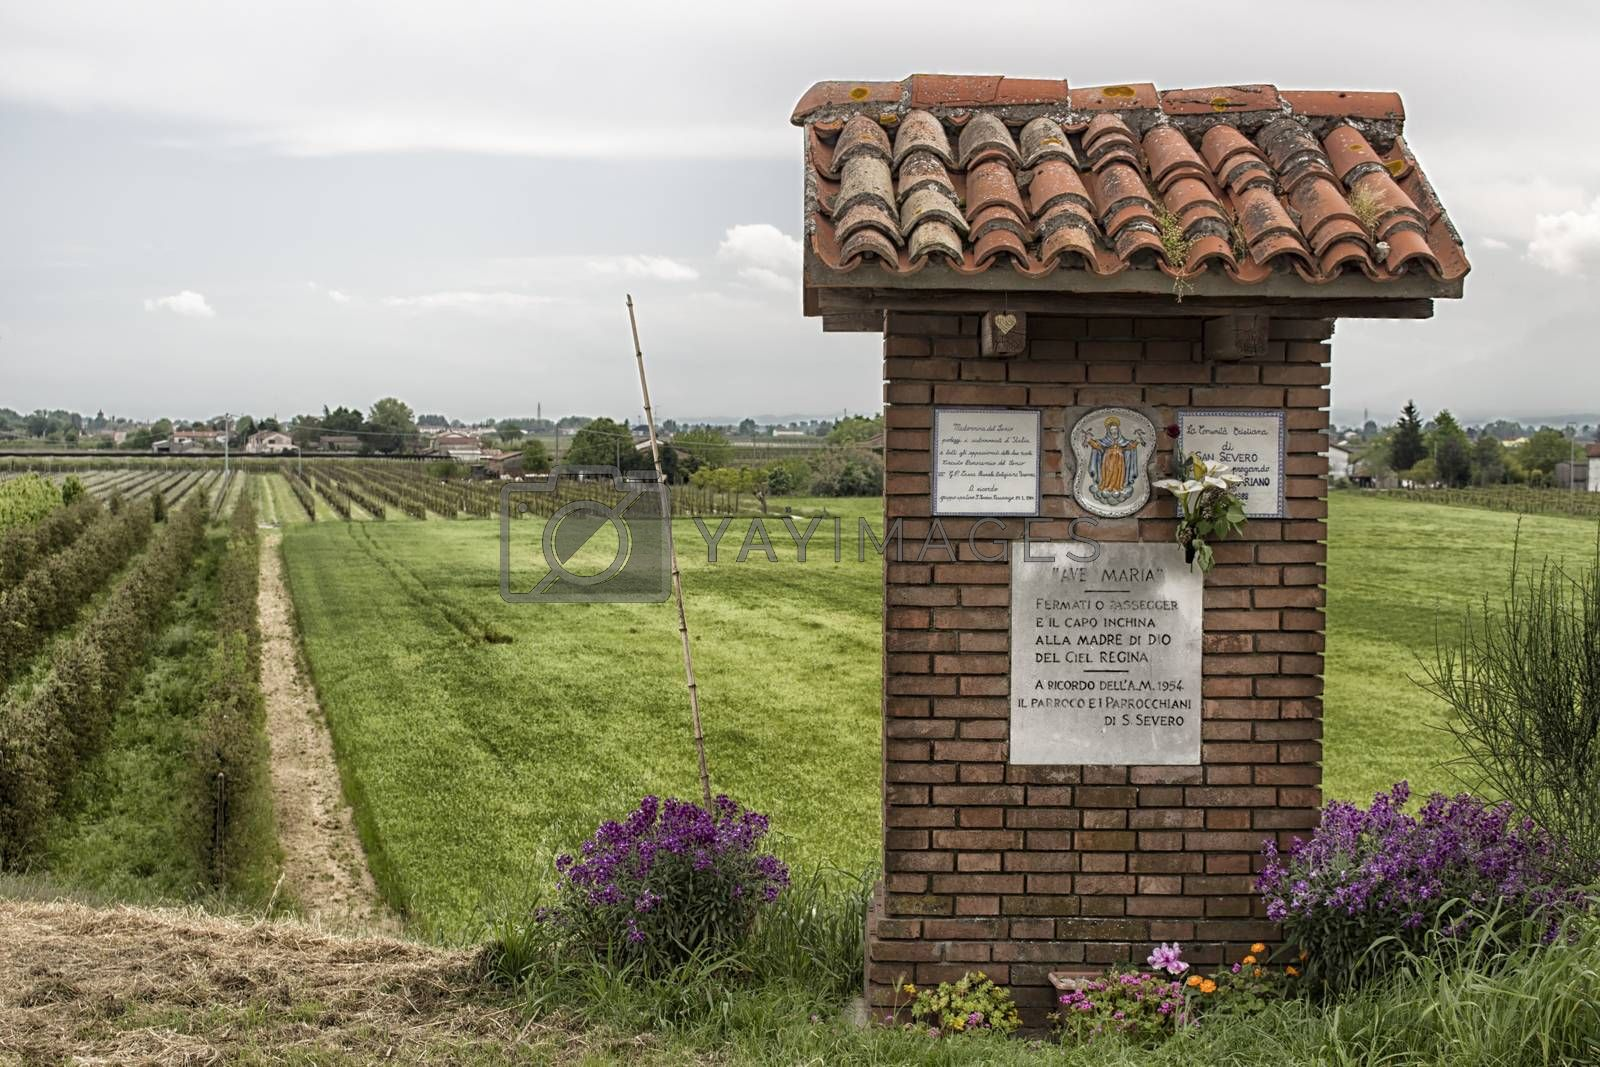 Votive monument to the Blessed Virgin Mary in the countryside near Cotignola in Italy